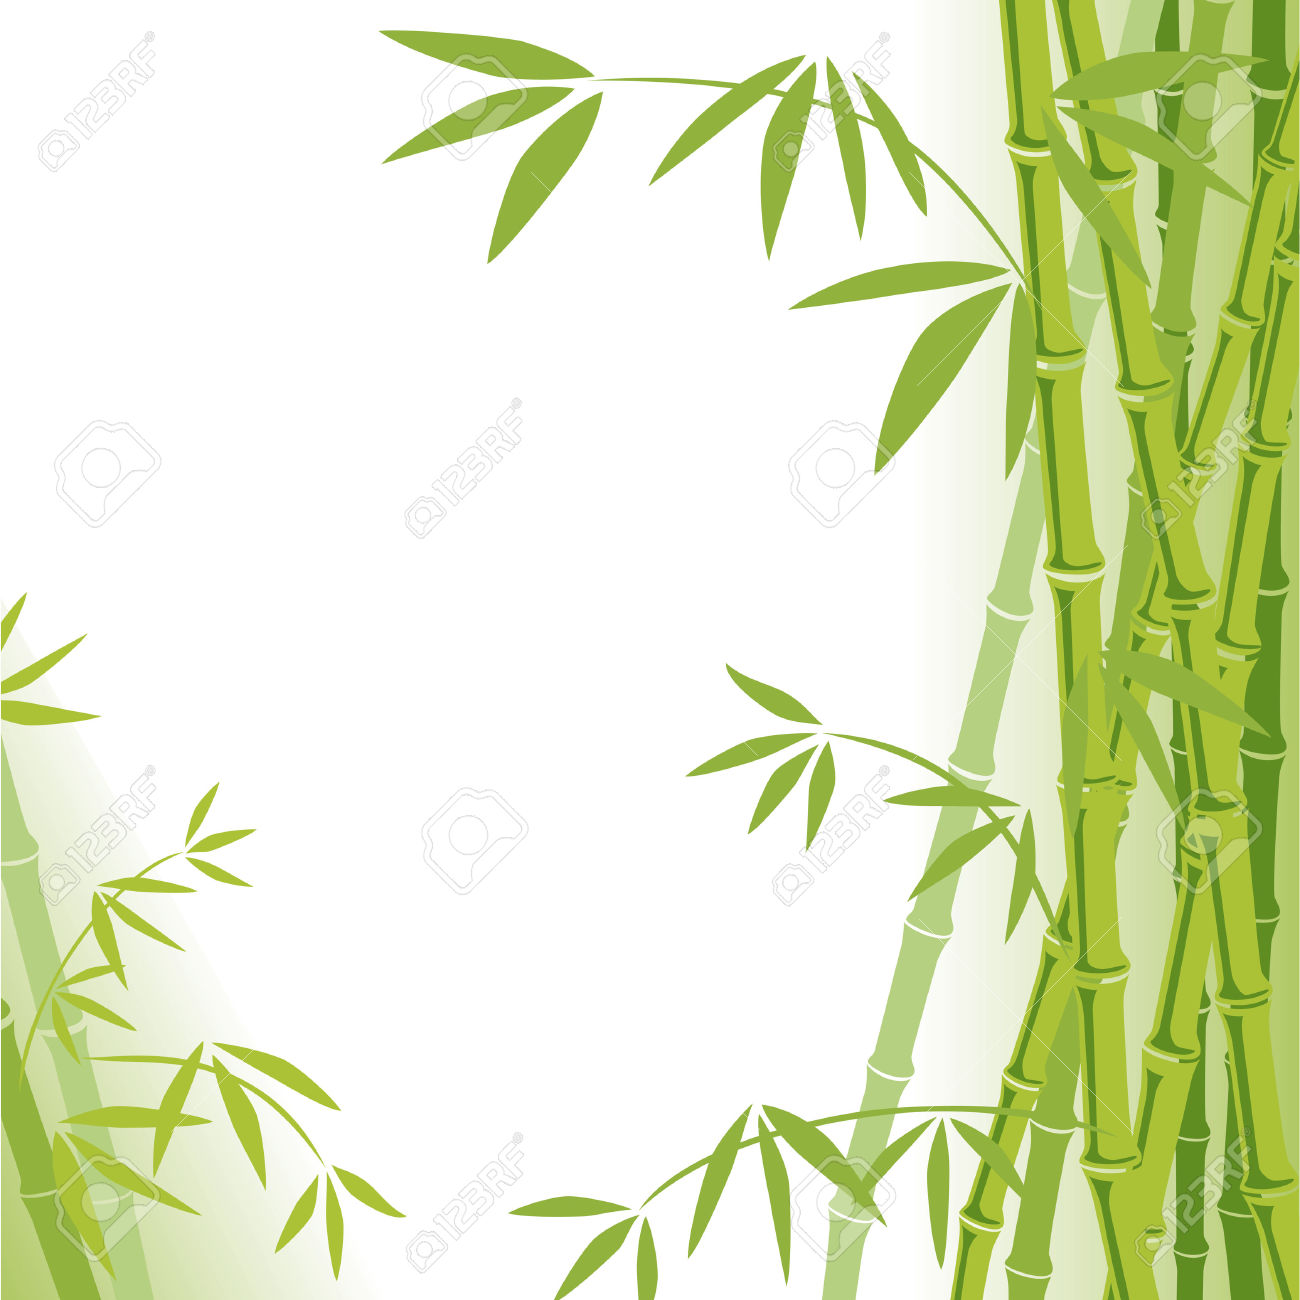 1639 Bamboo free clipart.